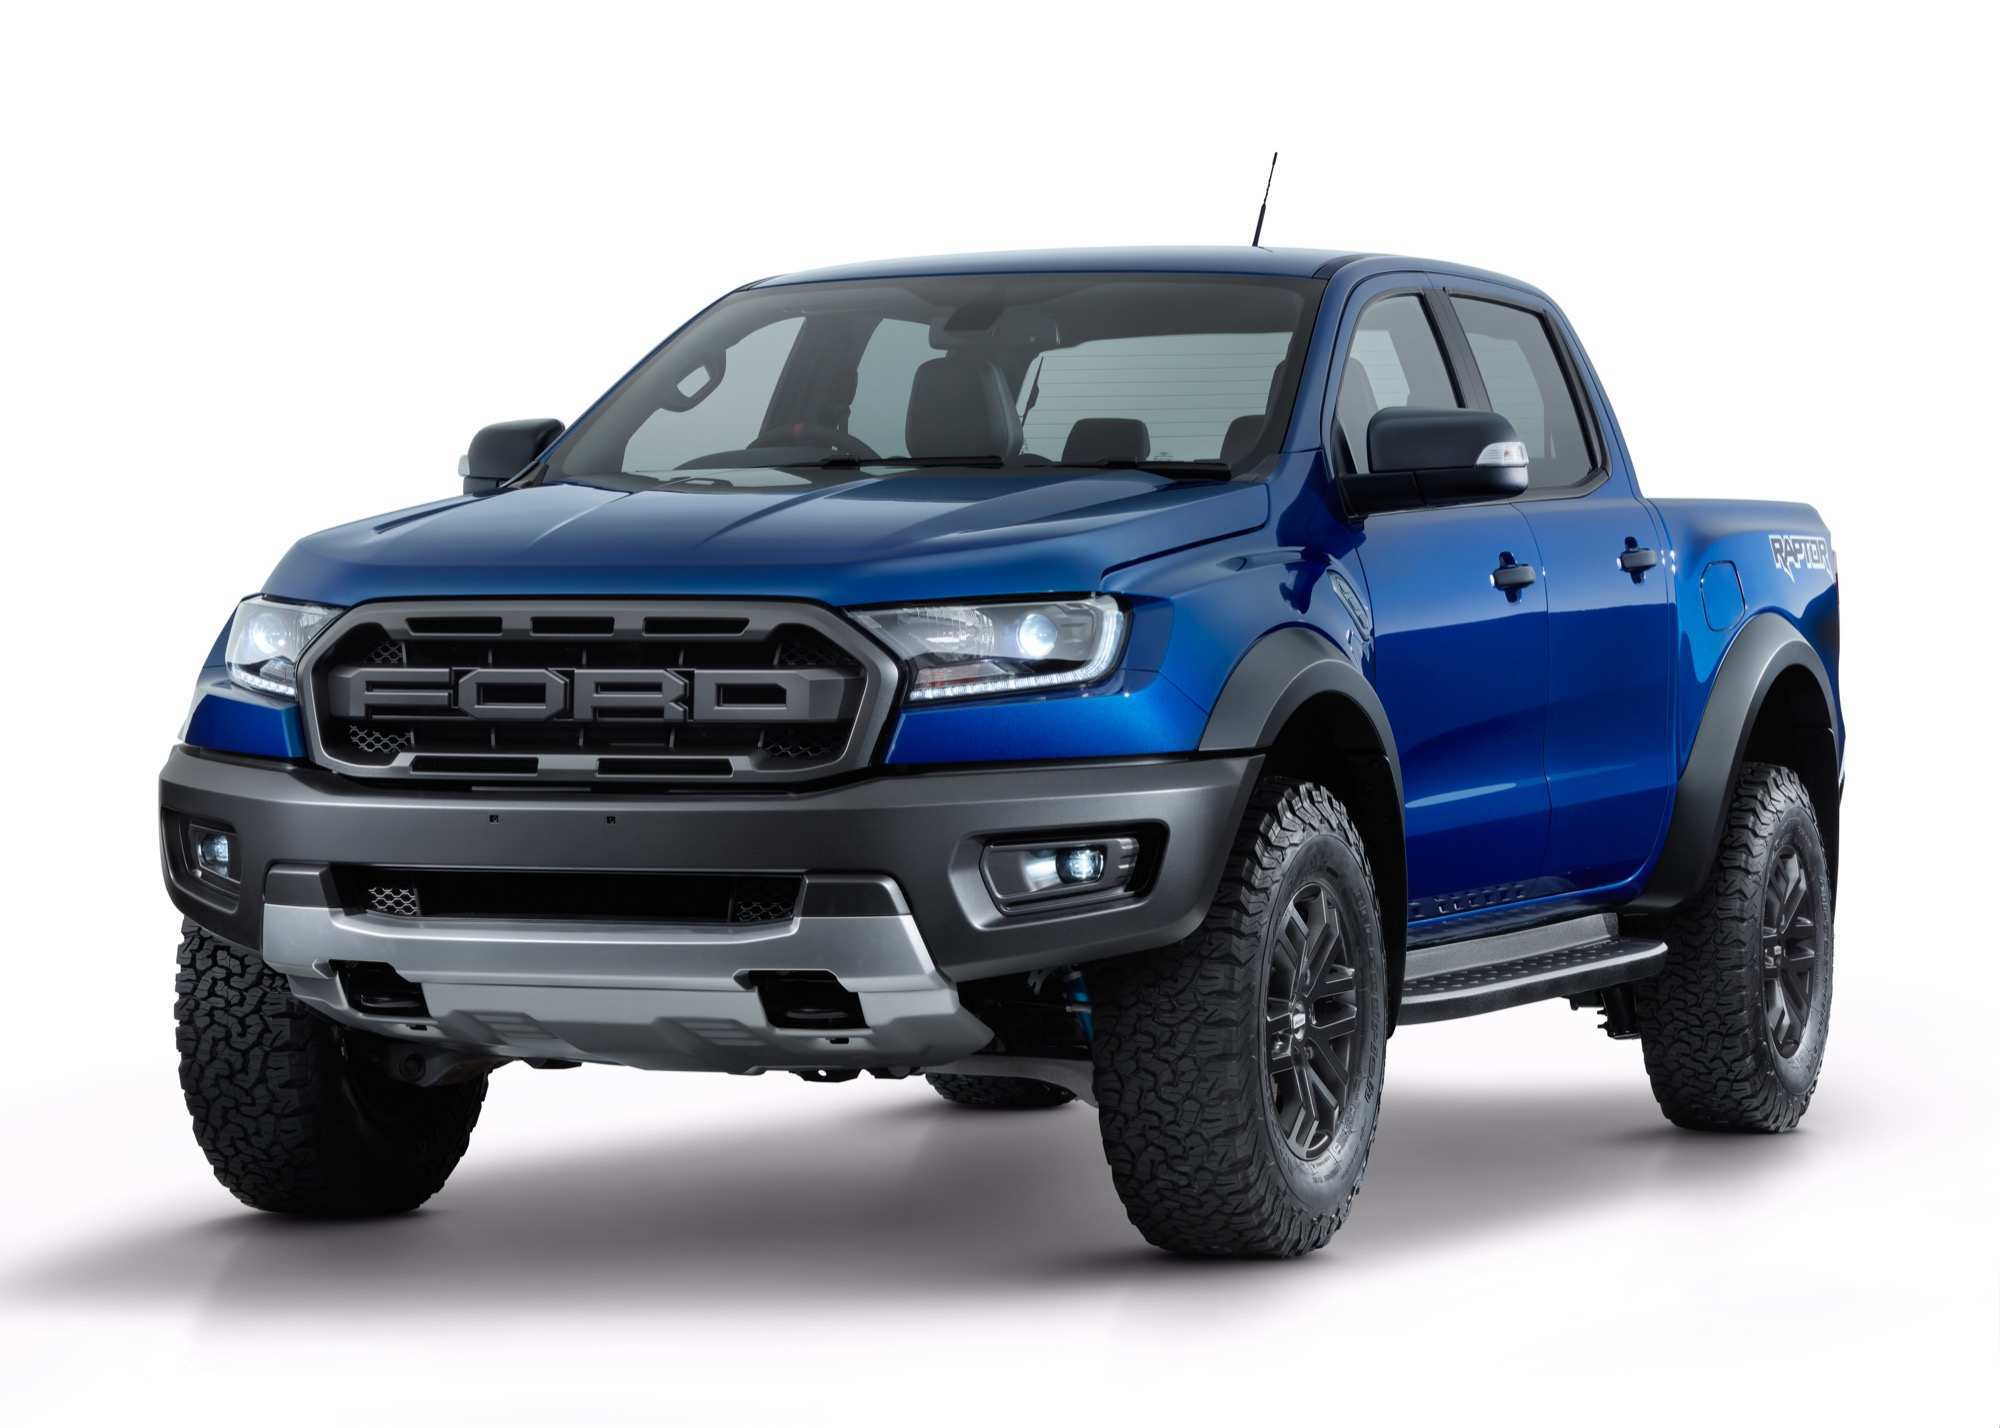 33 Best Review 2019 Ford Ranger Engine Options Specs with 2019 Ford Ranger Engine Options